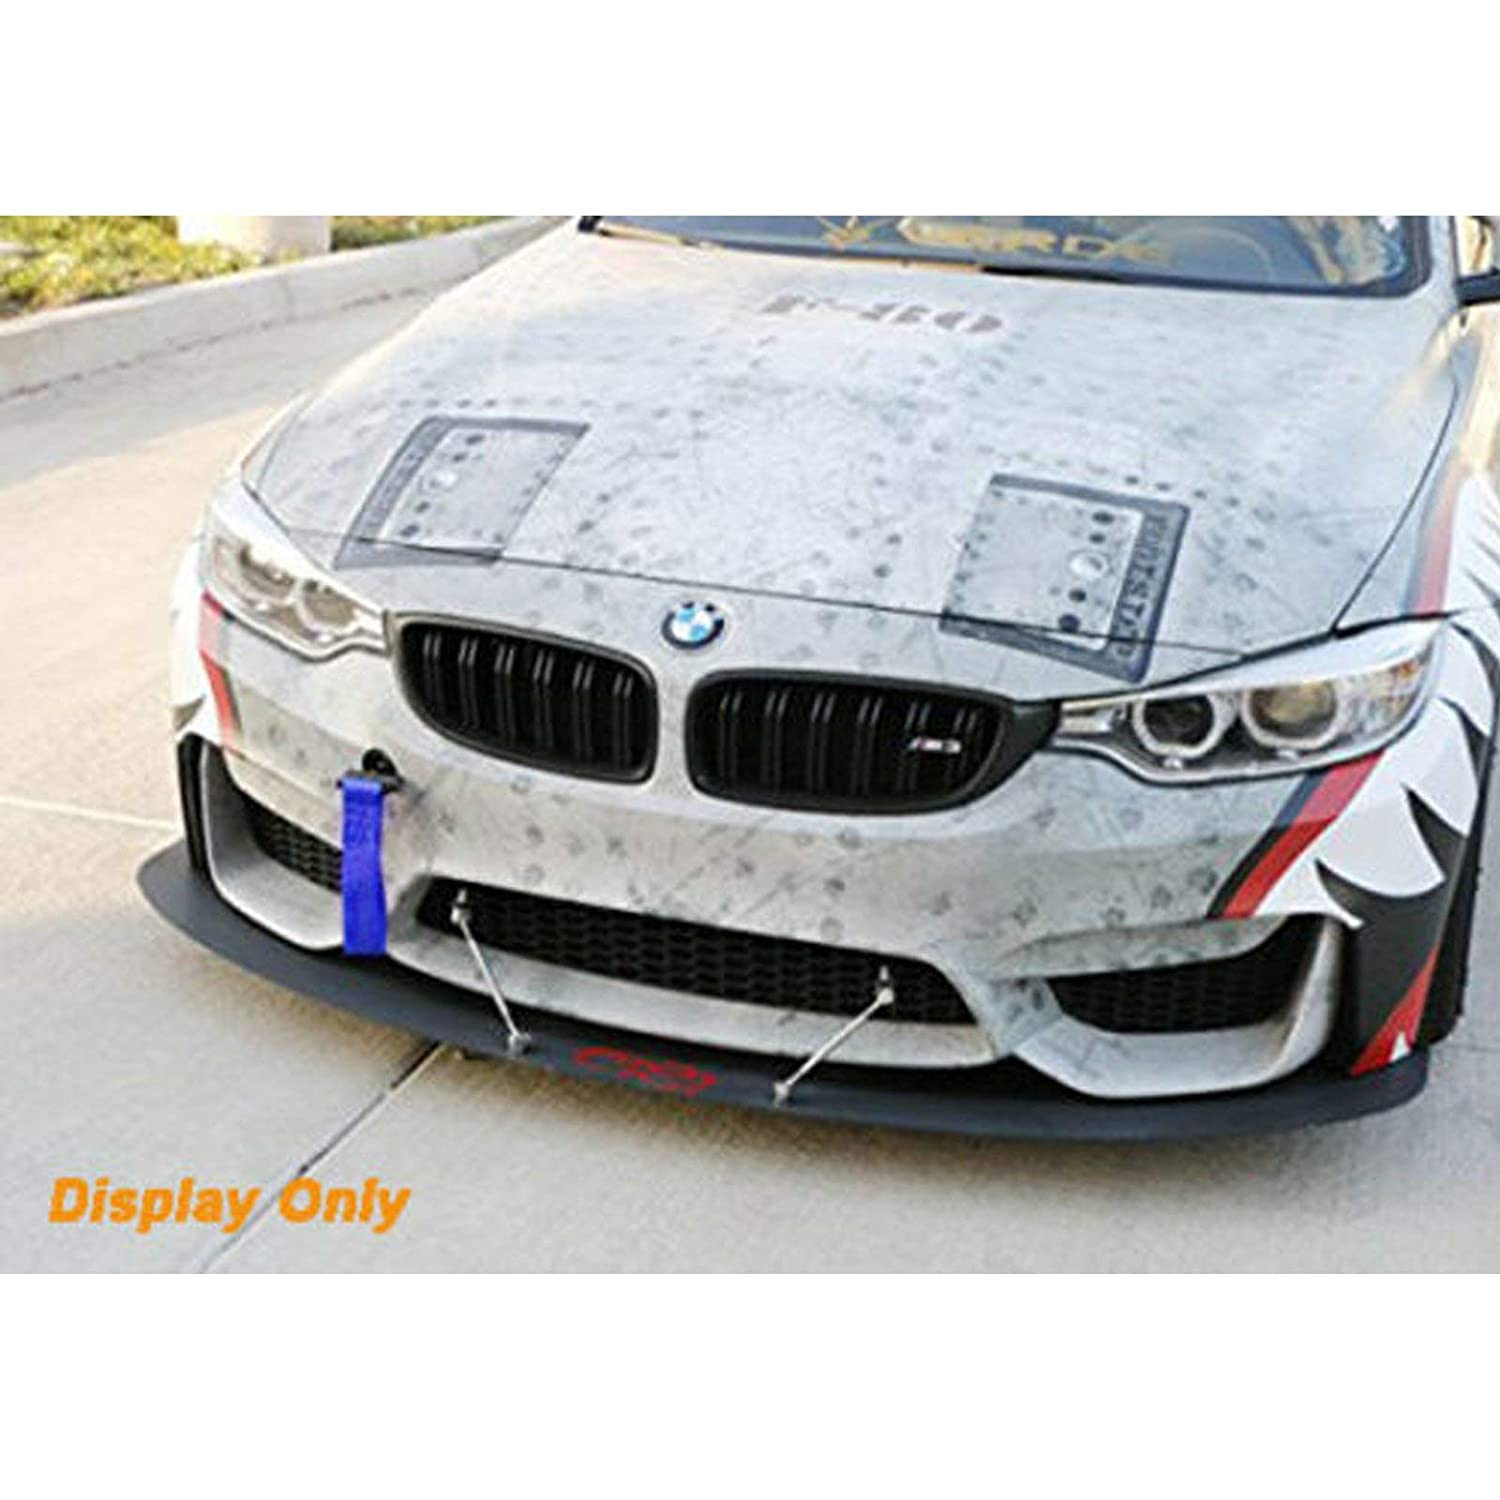 Xotic Tech Blue JDM Racing Sport Tow Hole Rod with Towing Strap for BMW X1 X3 X4 X5 X6 2 3 4 5 Fxx Series 2012+